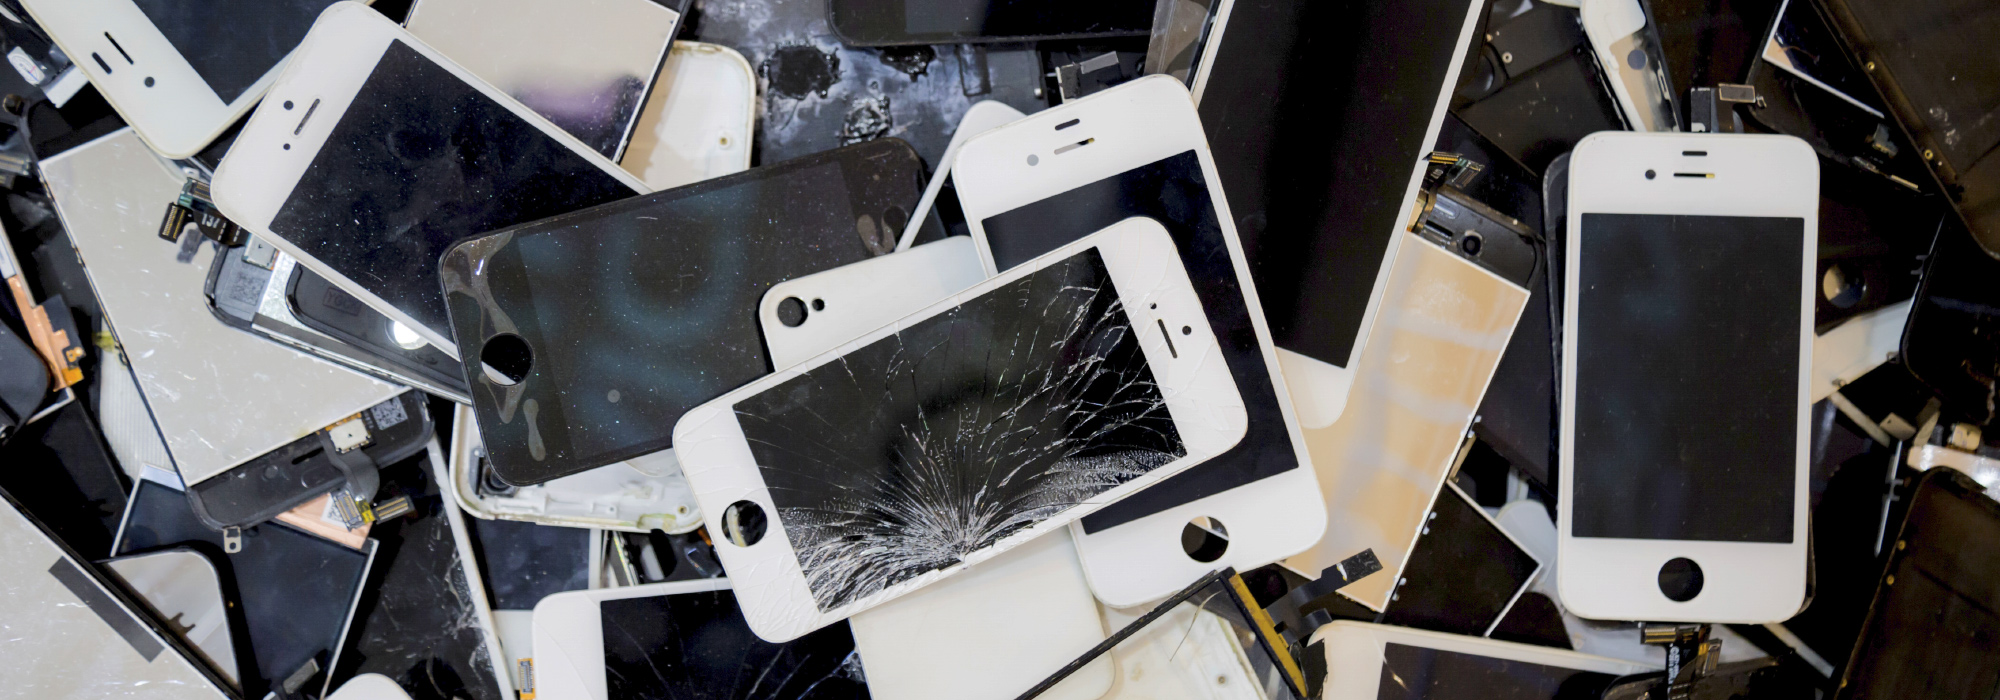 Broken iPhone - Asurion Mobile Insurance